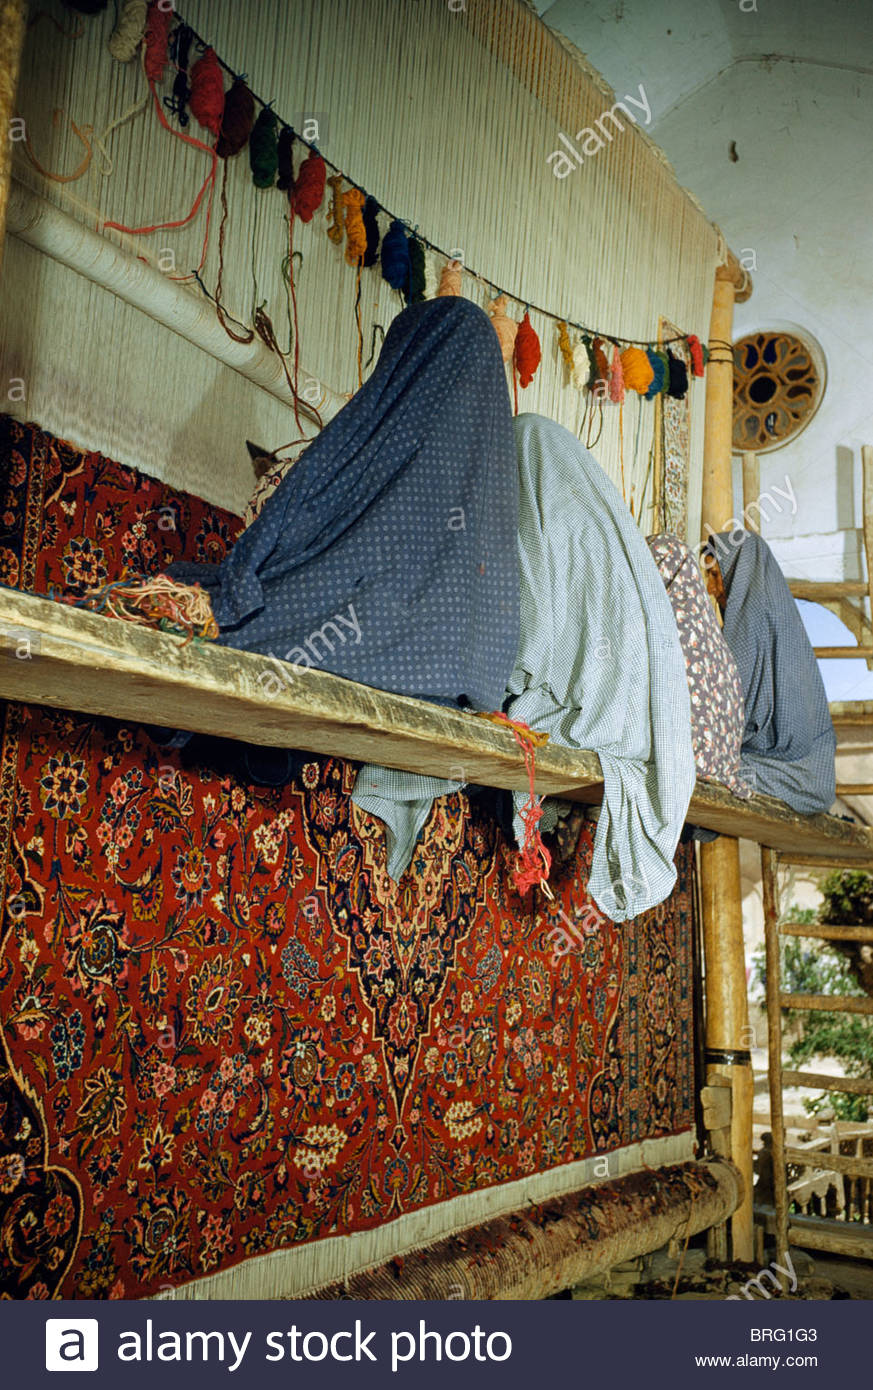 Cloaked women sit on a scaffold to make a rug in a home workshop. - Stock Image